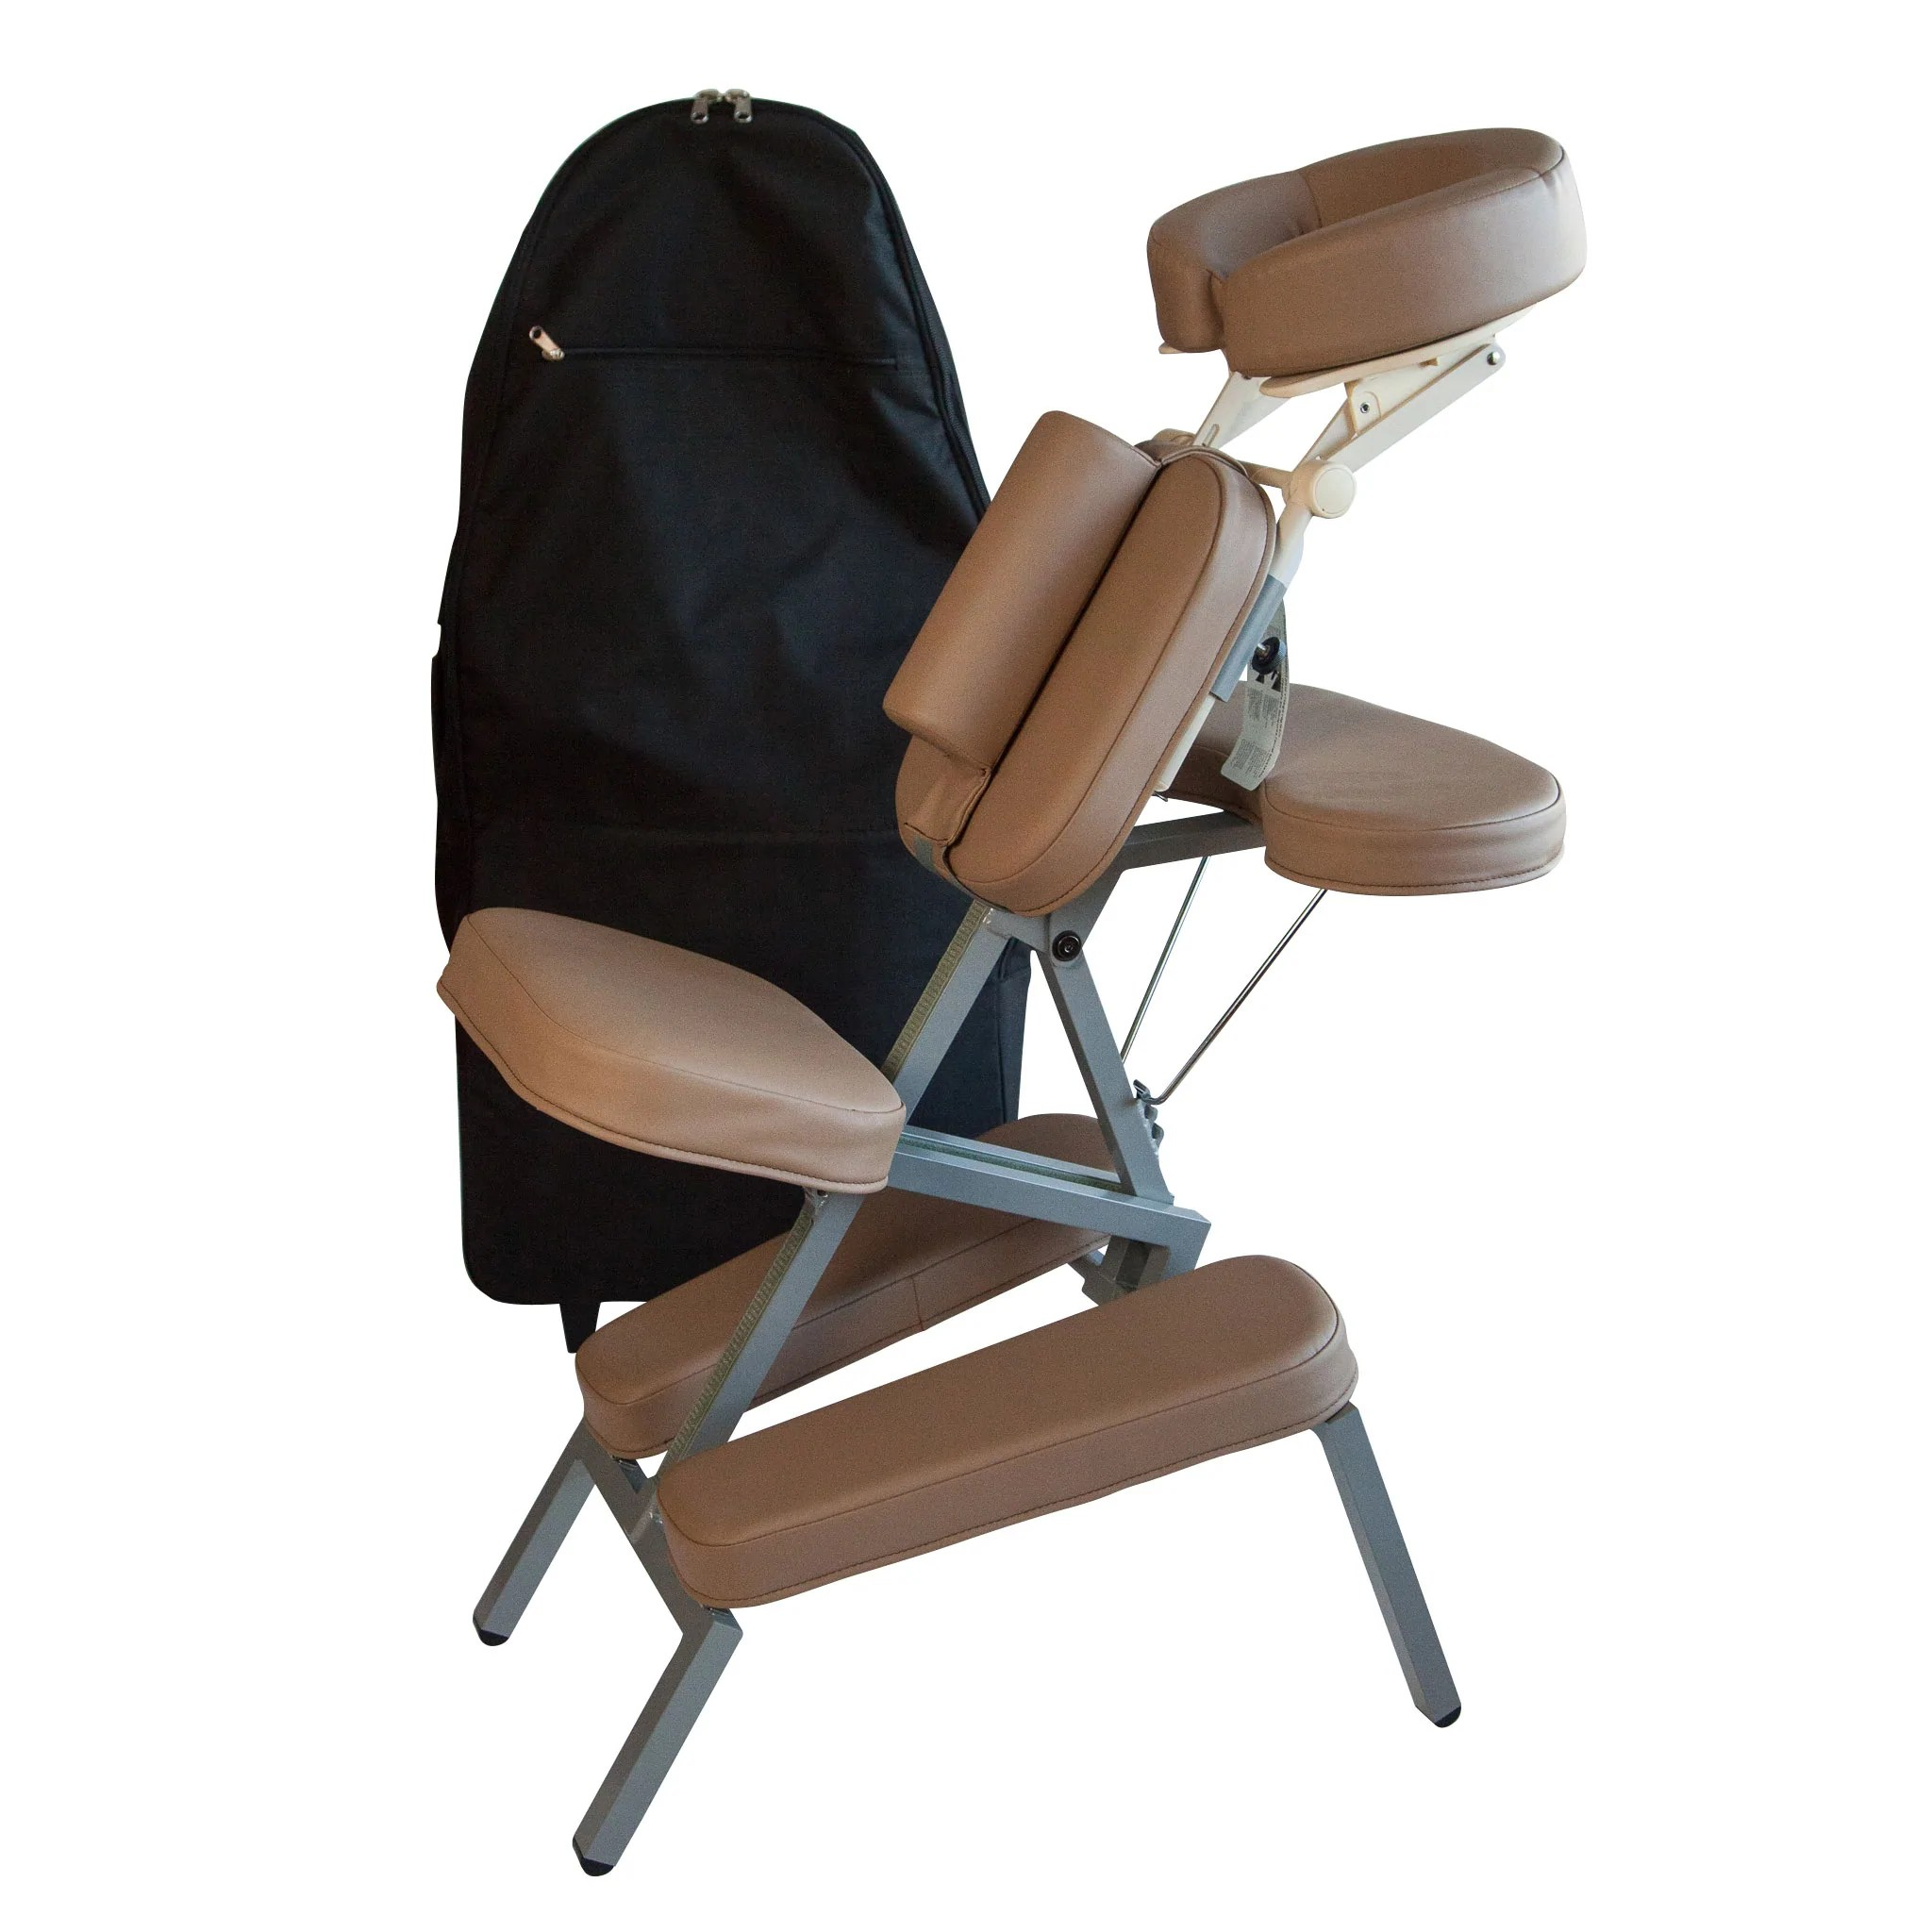 chair massage accessories cream puff bobs furniture portable therapy supplies nl pei nb